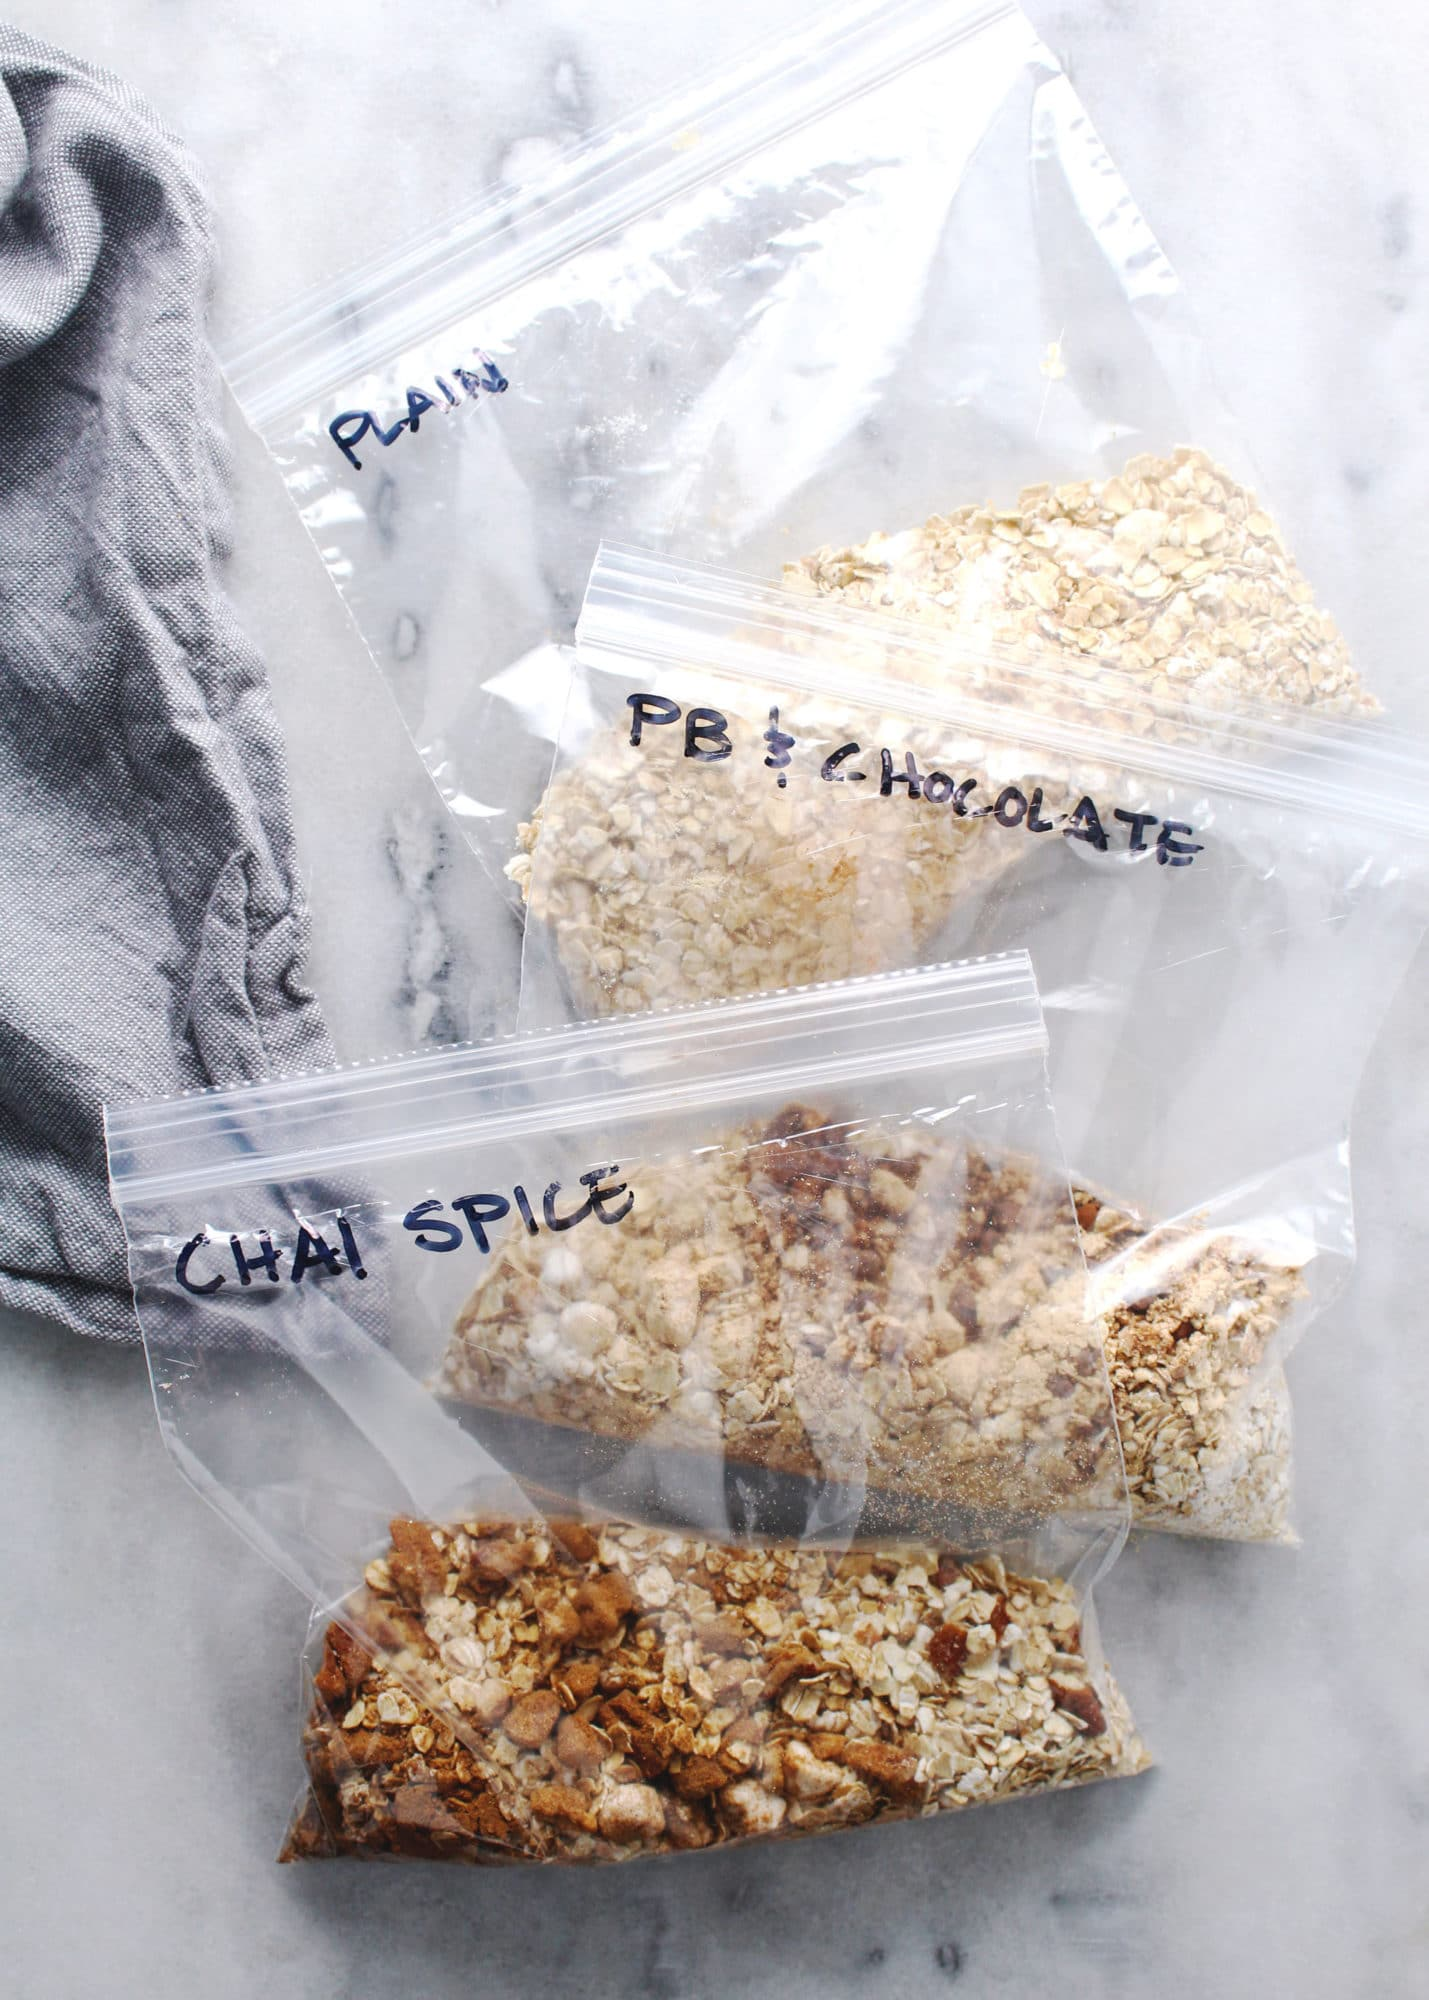 Whether you're in need of breakfast on-the-go or want to make something special for someone, these instant oatmeal packets are a nice healthy morning treat   via @AimeeMarsLiving   #Instant #Oatmeal #Packets #Homemade